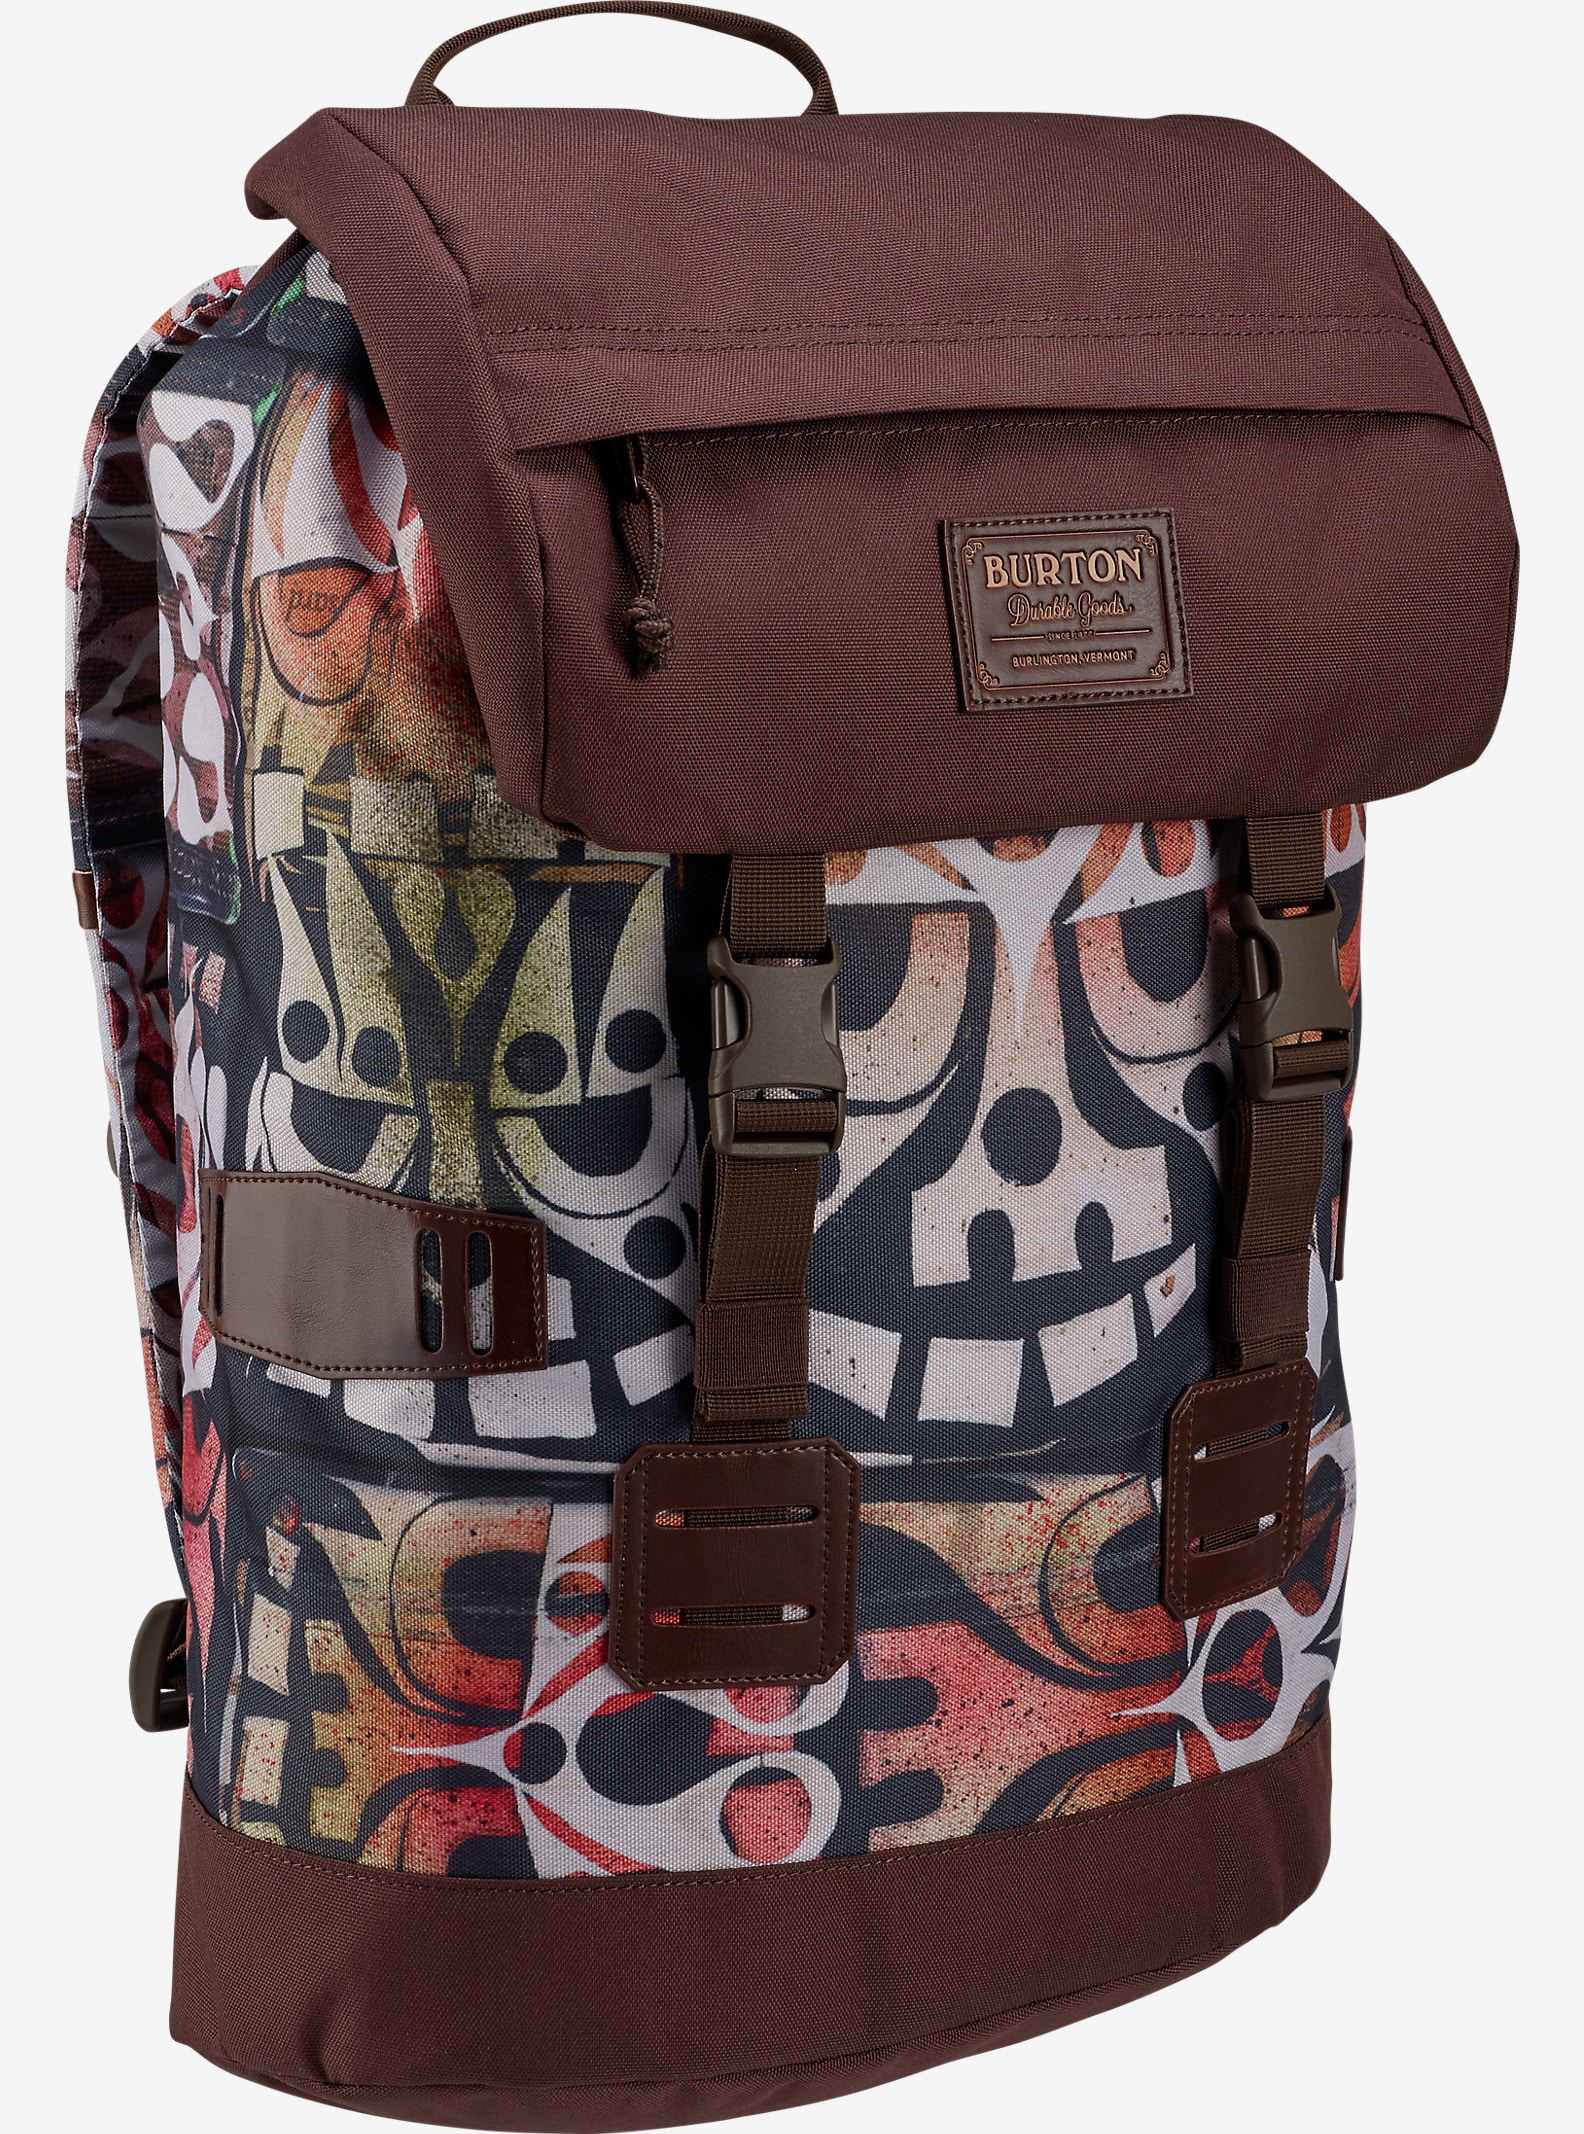 Phil Frost × G Pen × Burton Tinder Backpack shown in Phil Frost